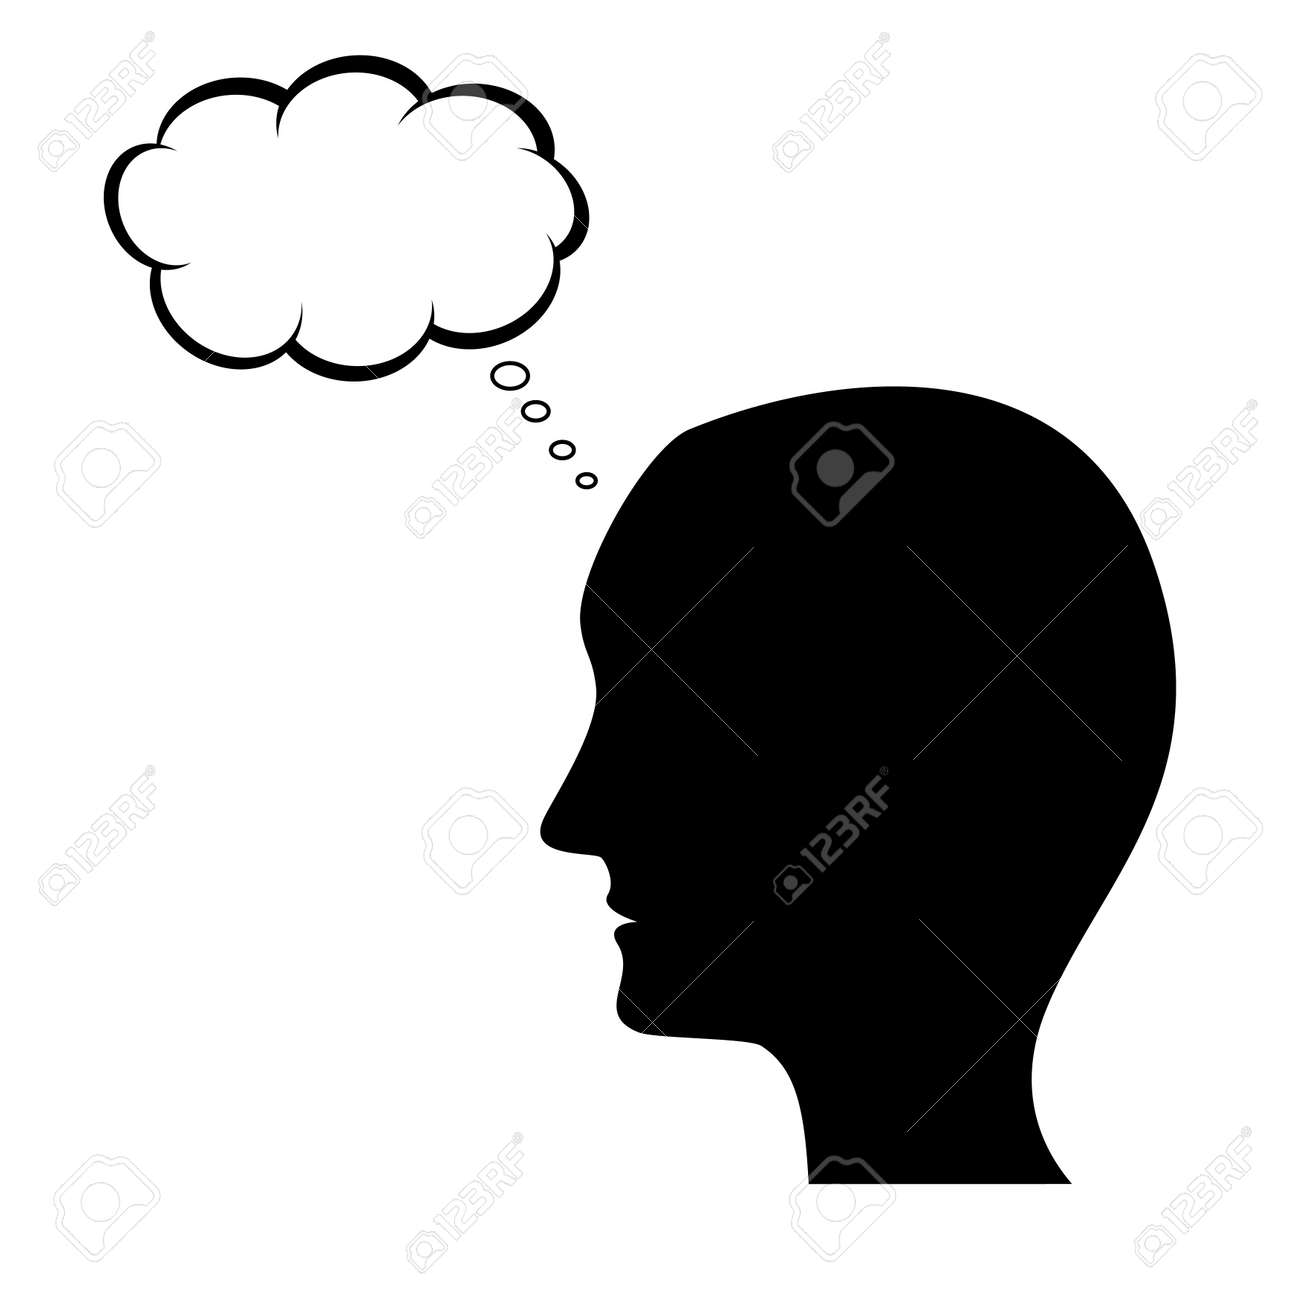 thinking man silhouette with thought bubble royalty free cliparts